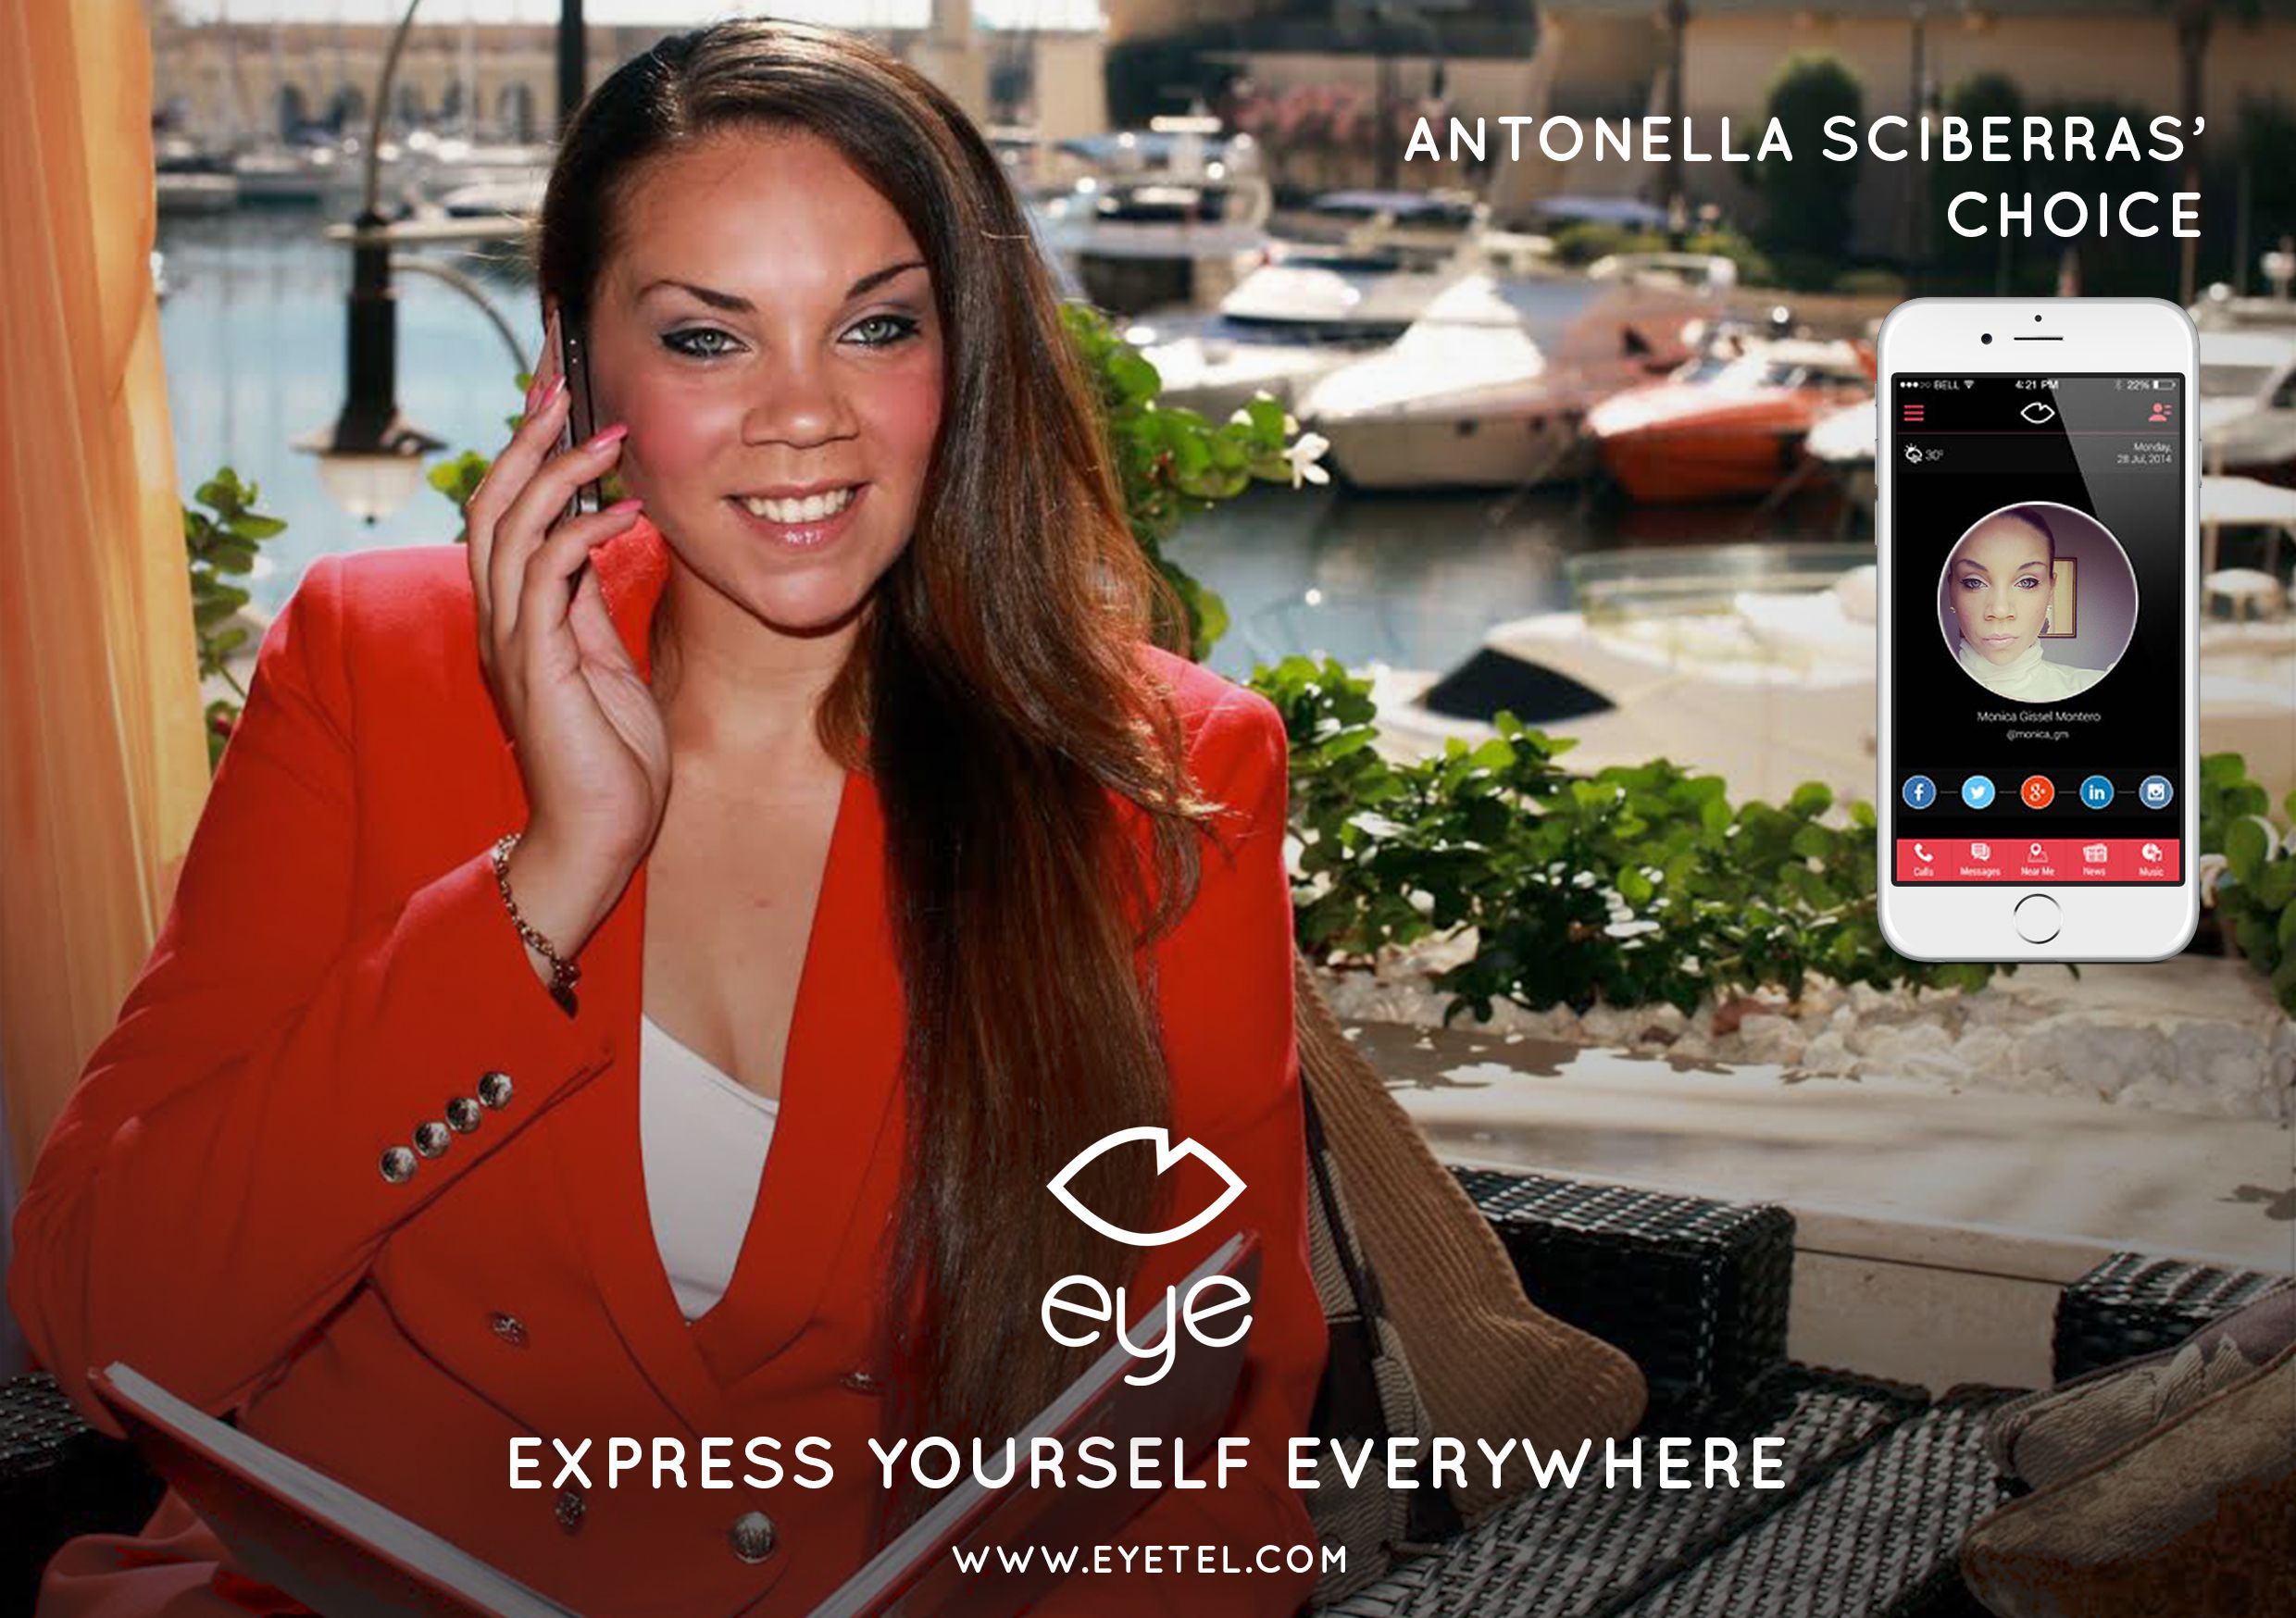 EYE Ambassador // Antonella Sciberras // Photo 1